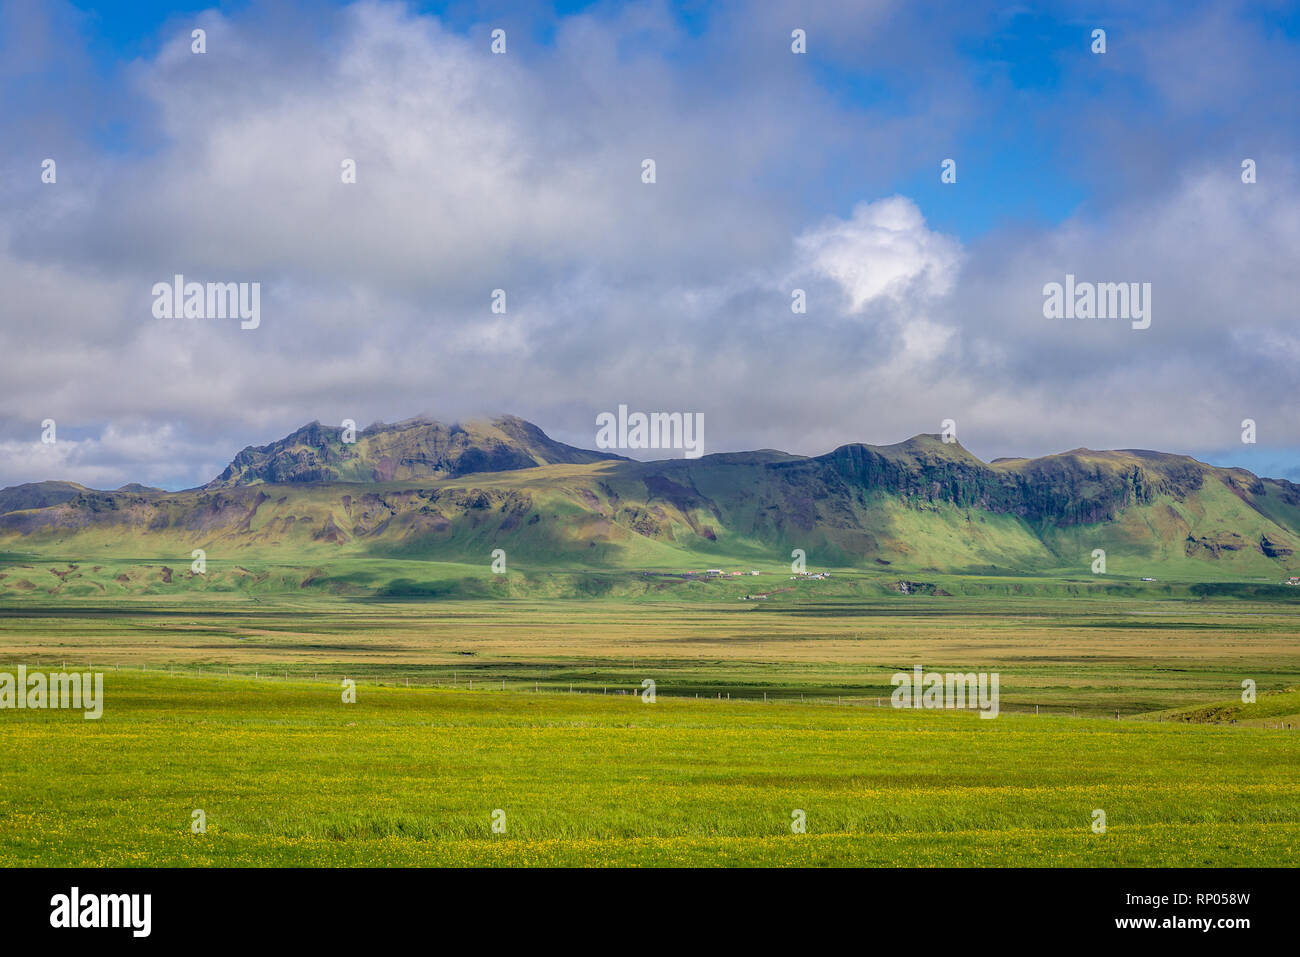 Summer view near Dyrholaey promontory in Iceland - Stock Image